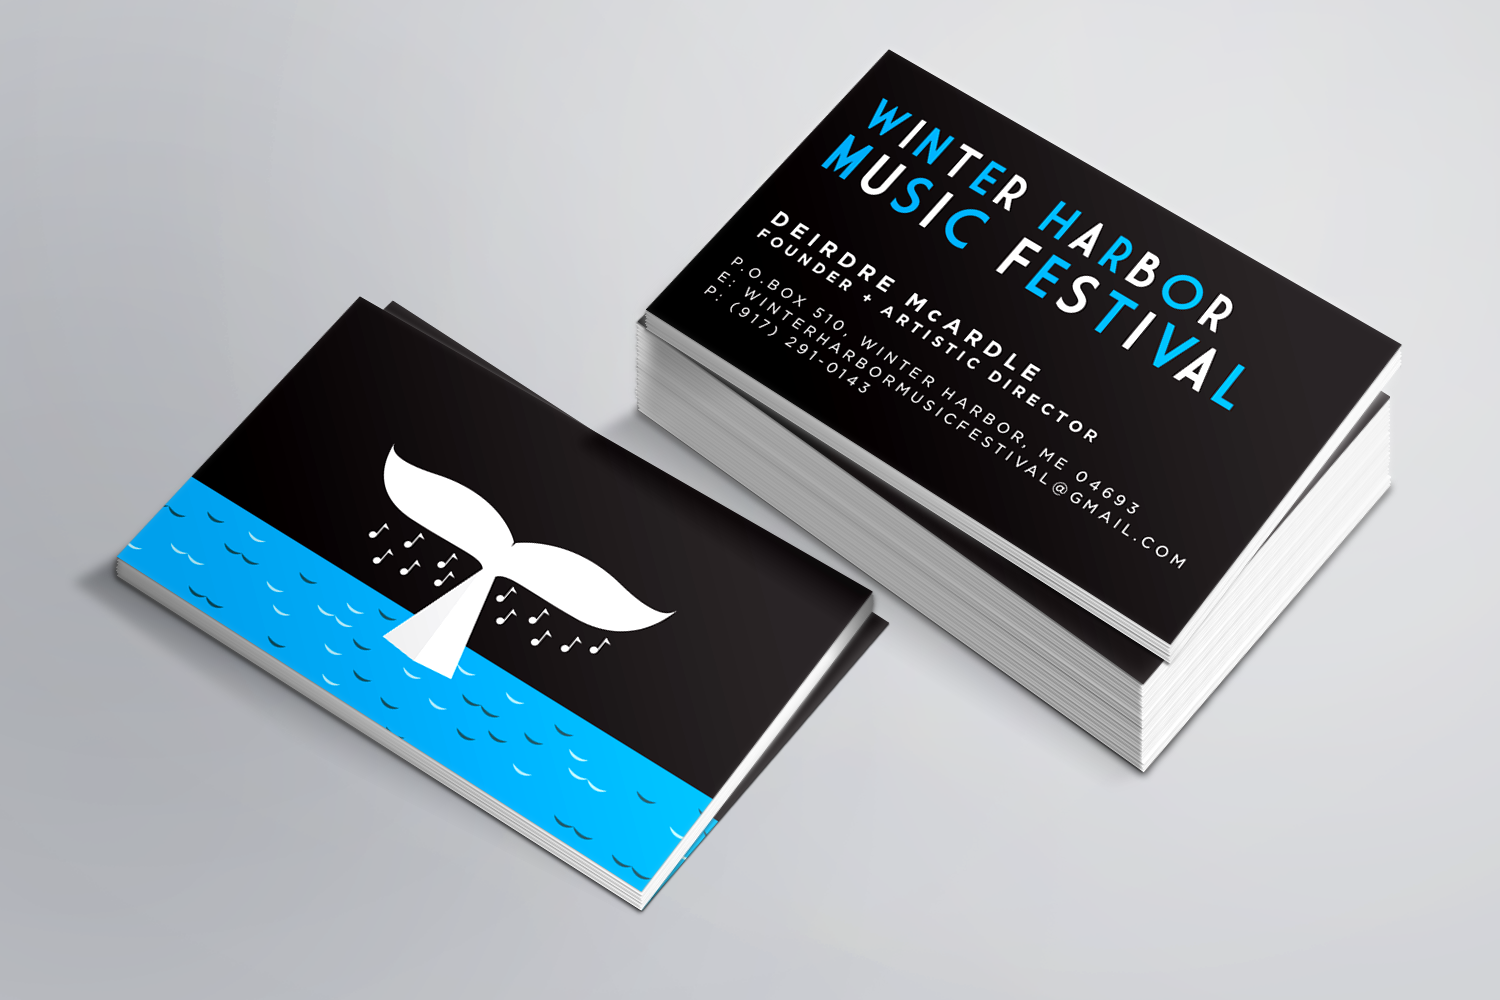 whmf_business-cards_2.png